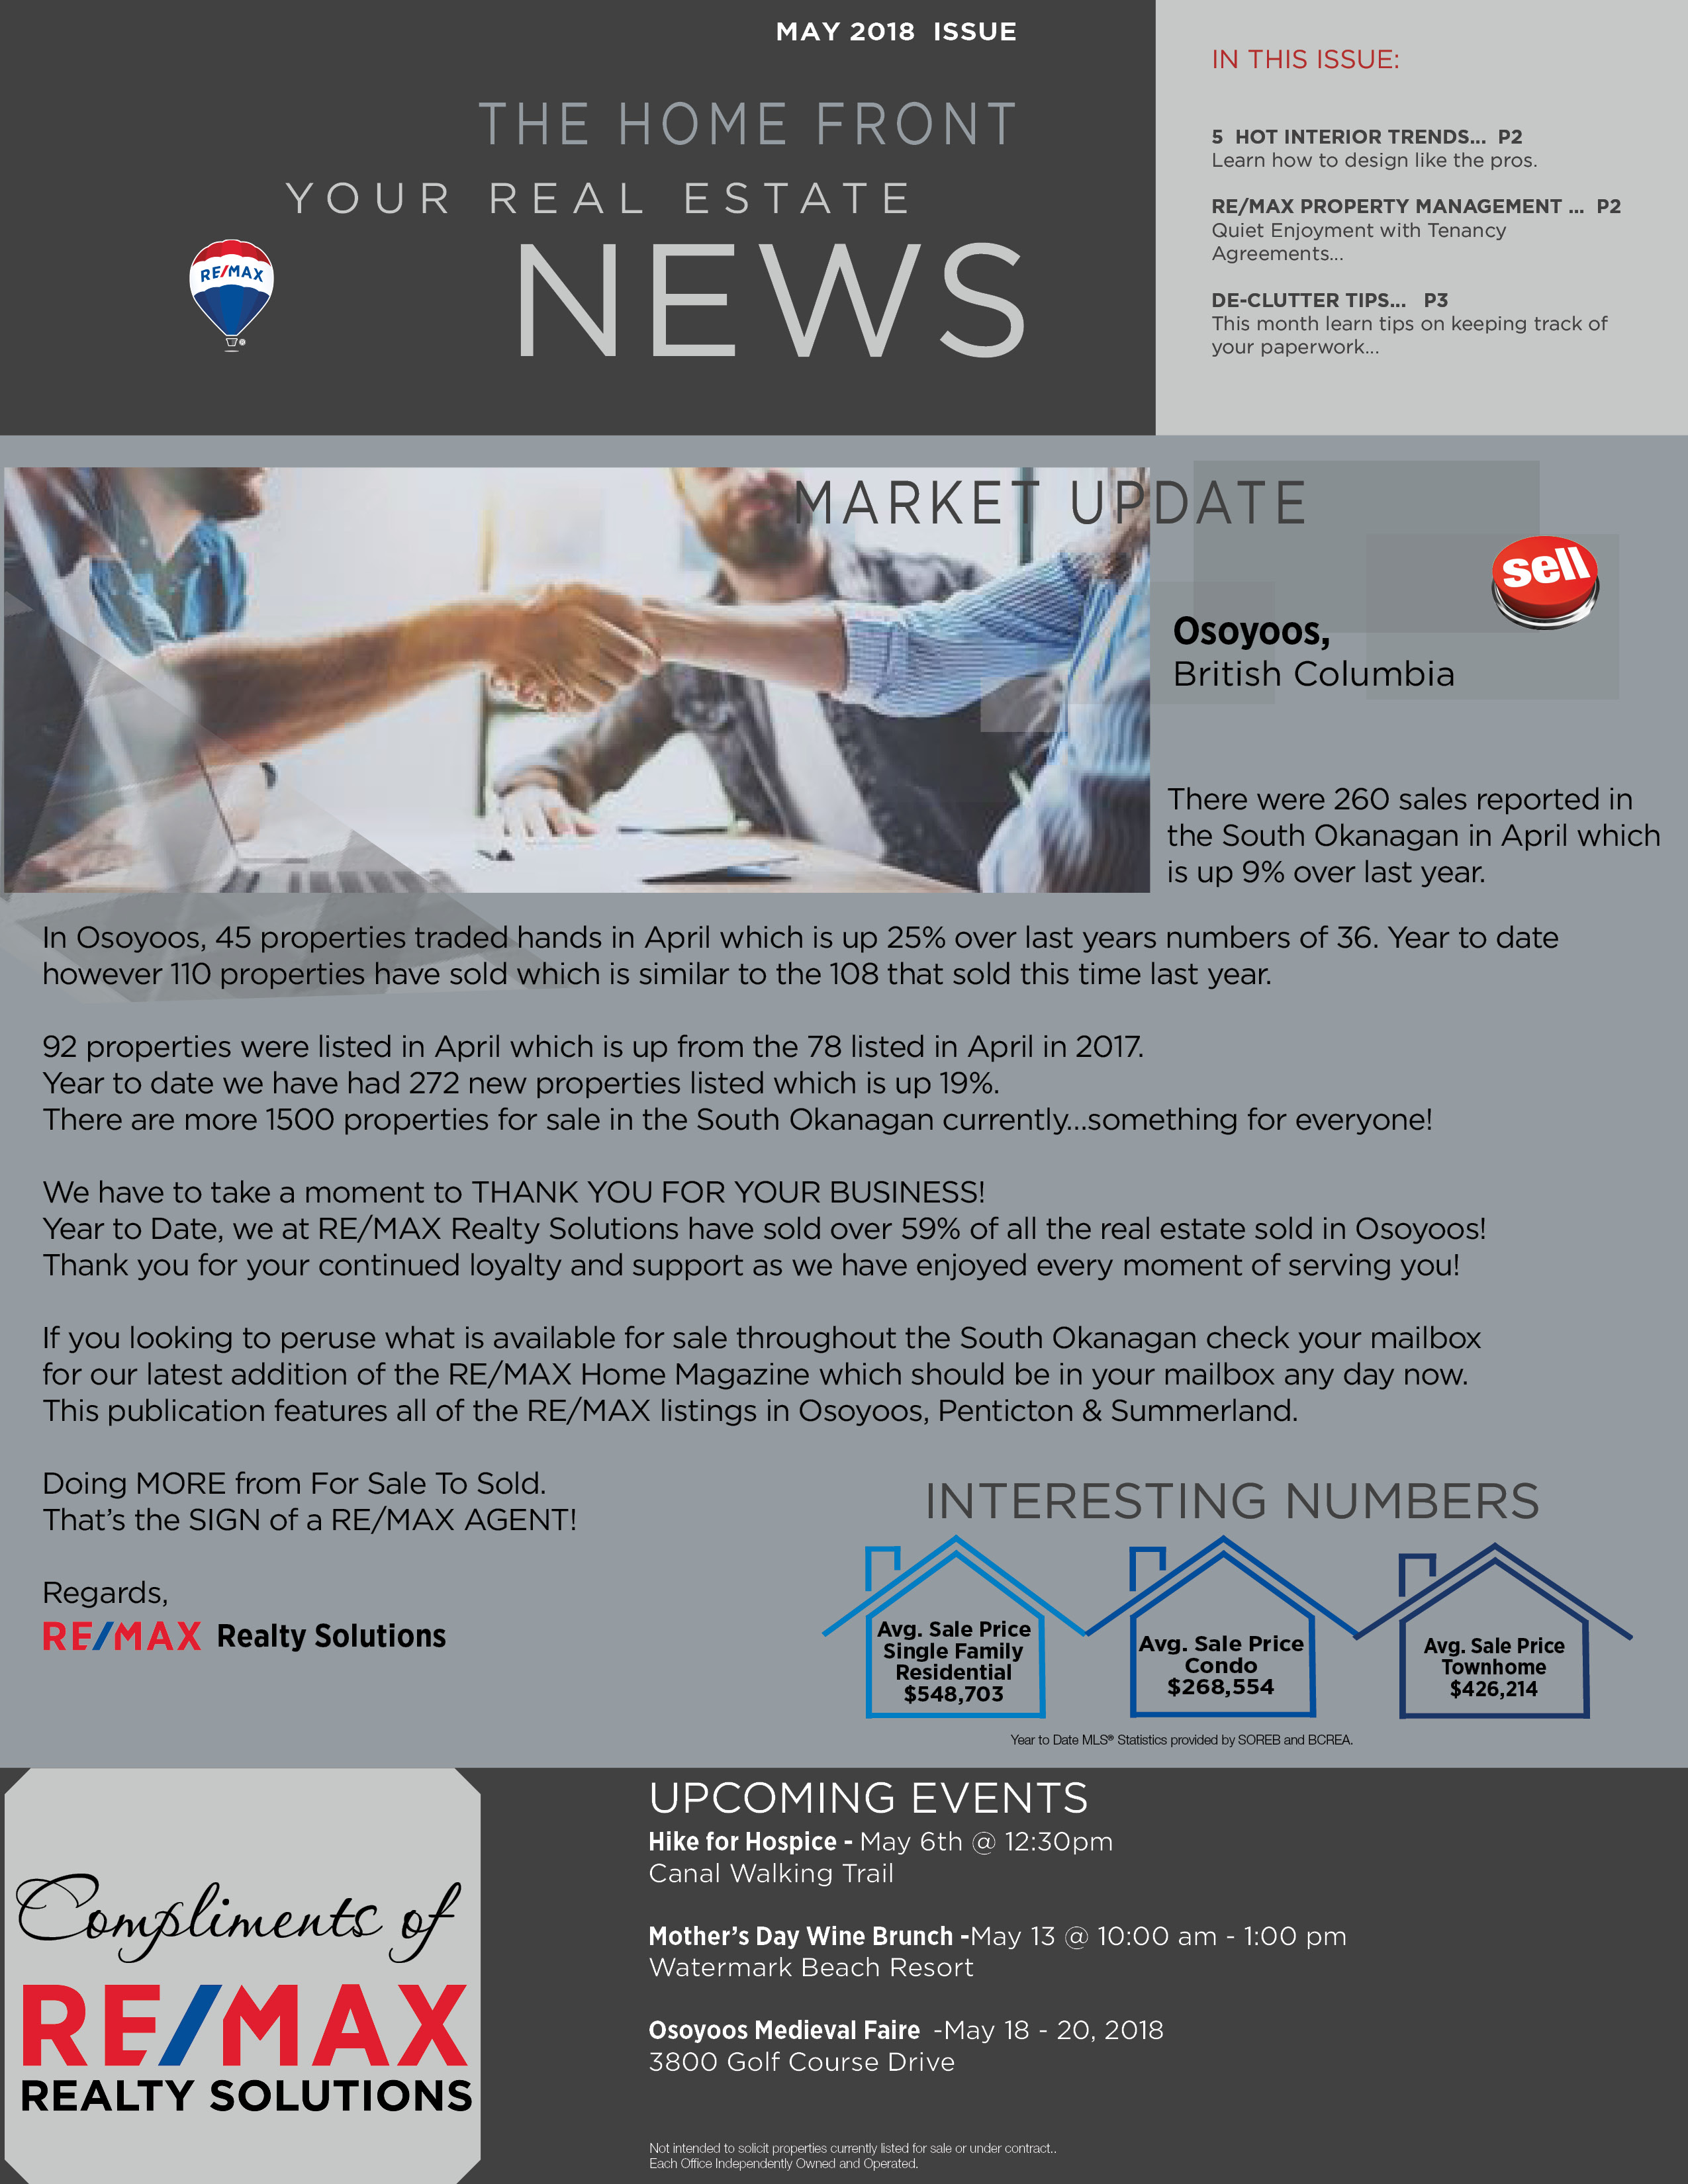 WEBIMAGES: MAY 2018 REMAX Newsletter_3.jpg